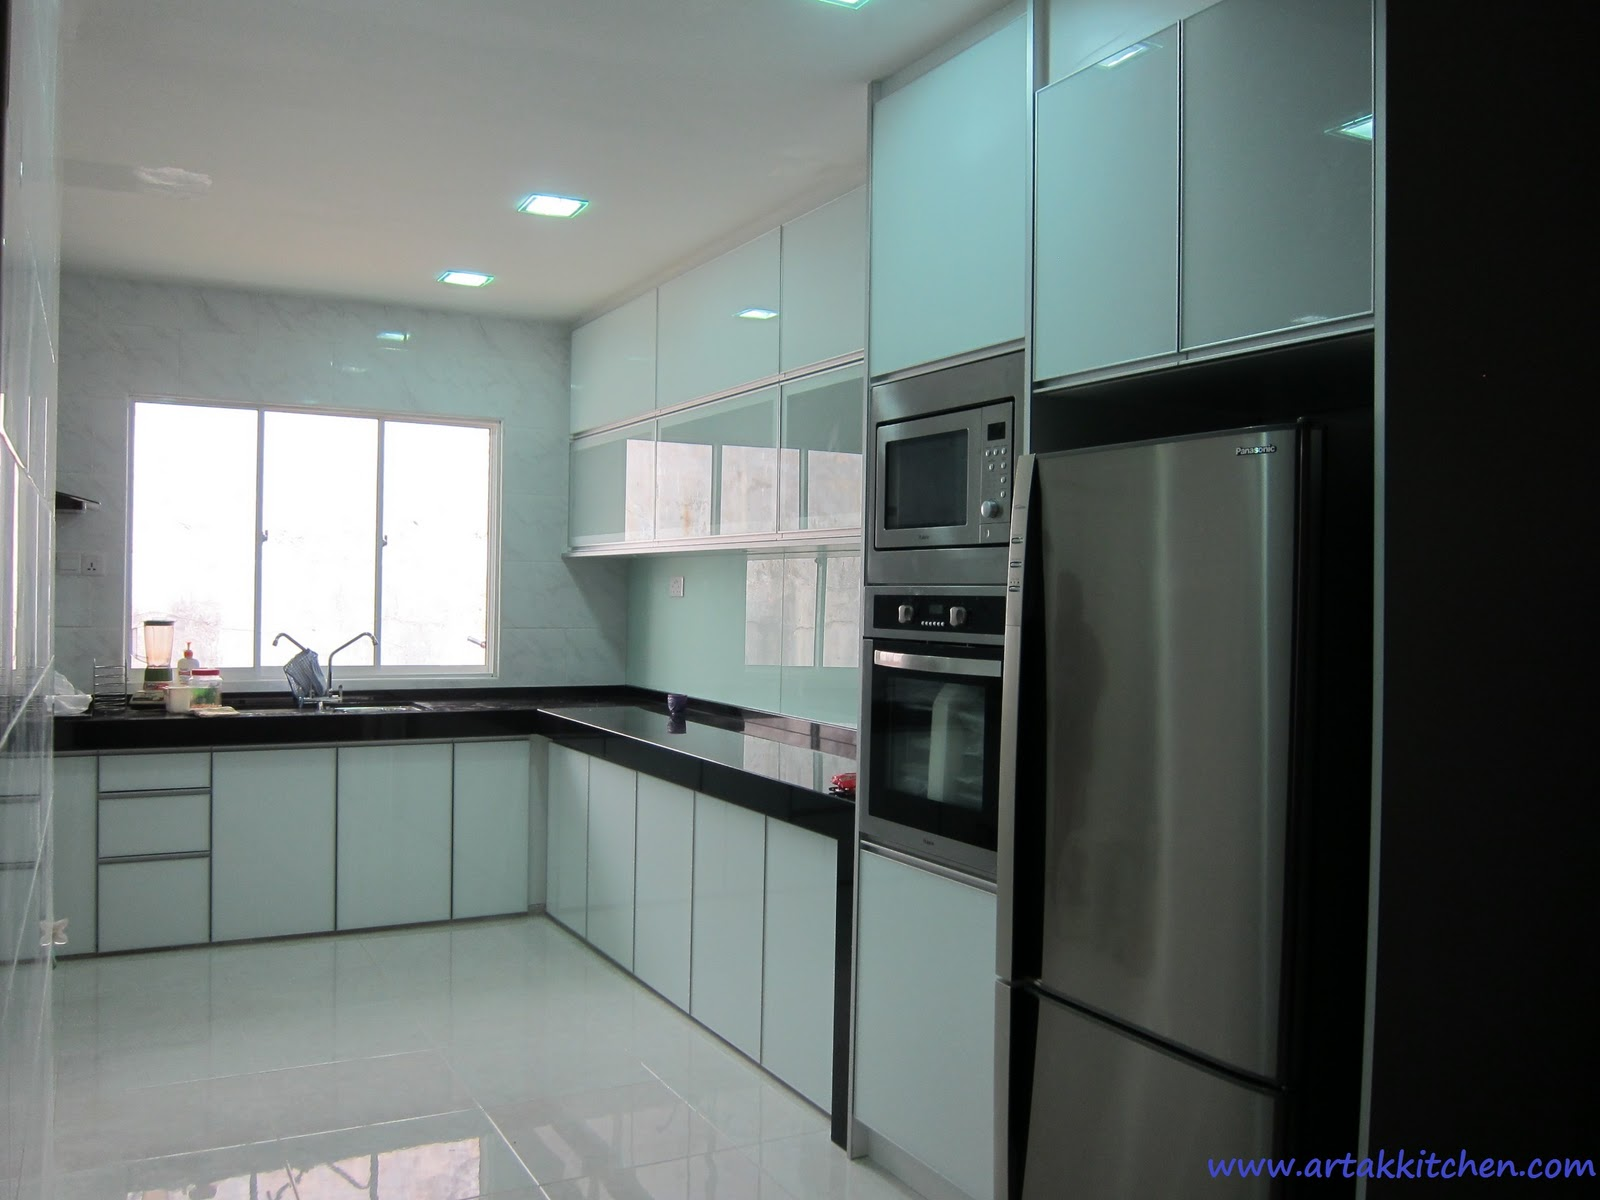 Kitchen Cabinet Price Ipoh | Green House Inovation